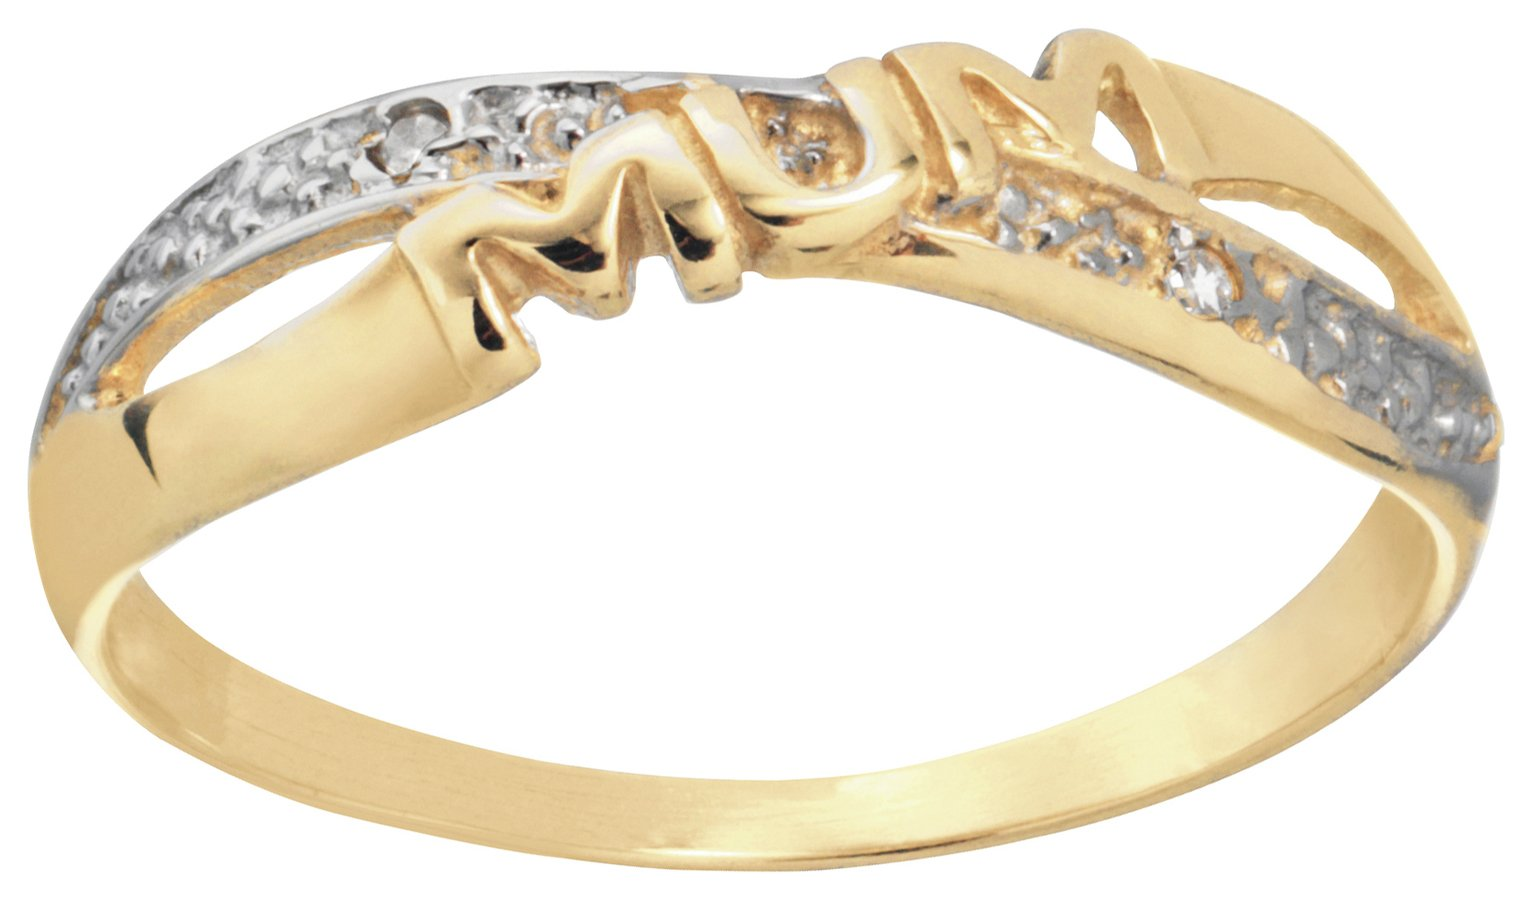 Buy Moon & Back 9ct Gold Diamond Accent Mum Crossover Ring at